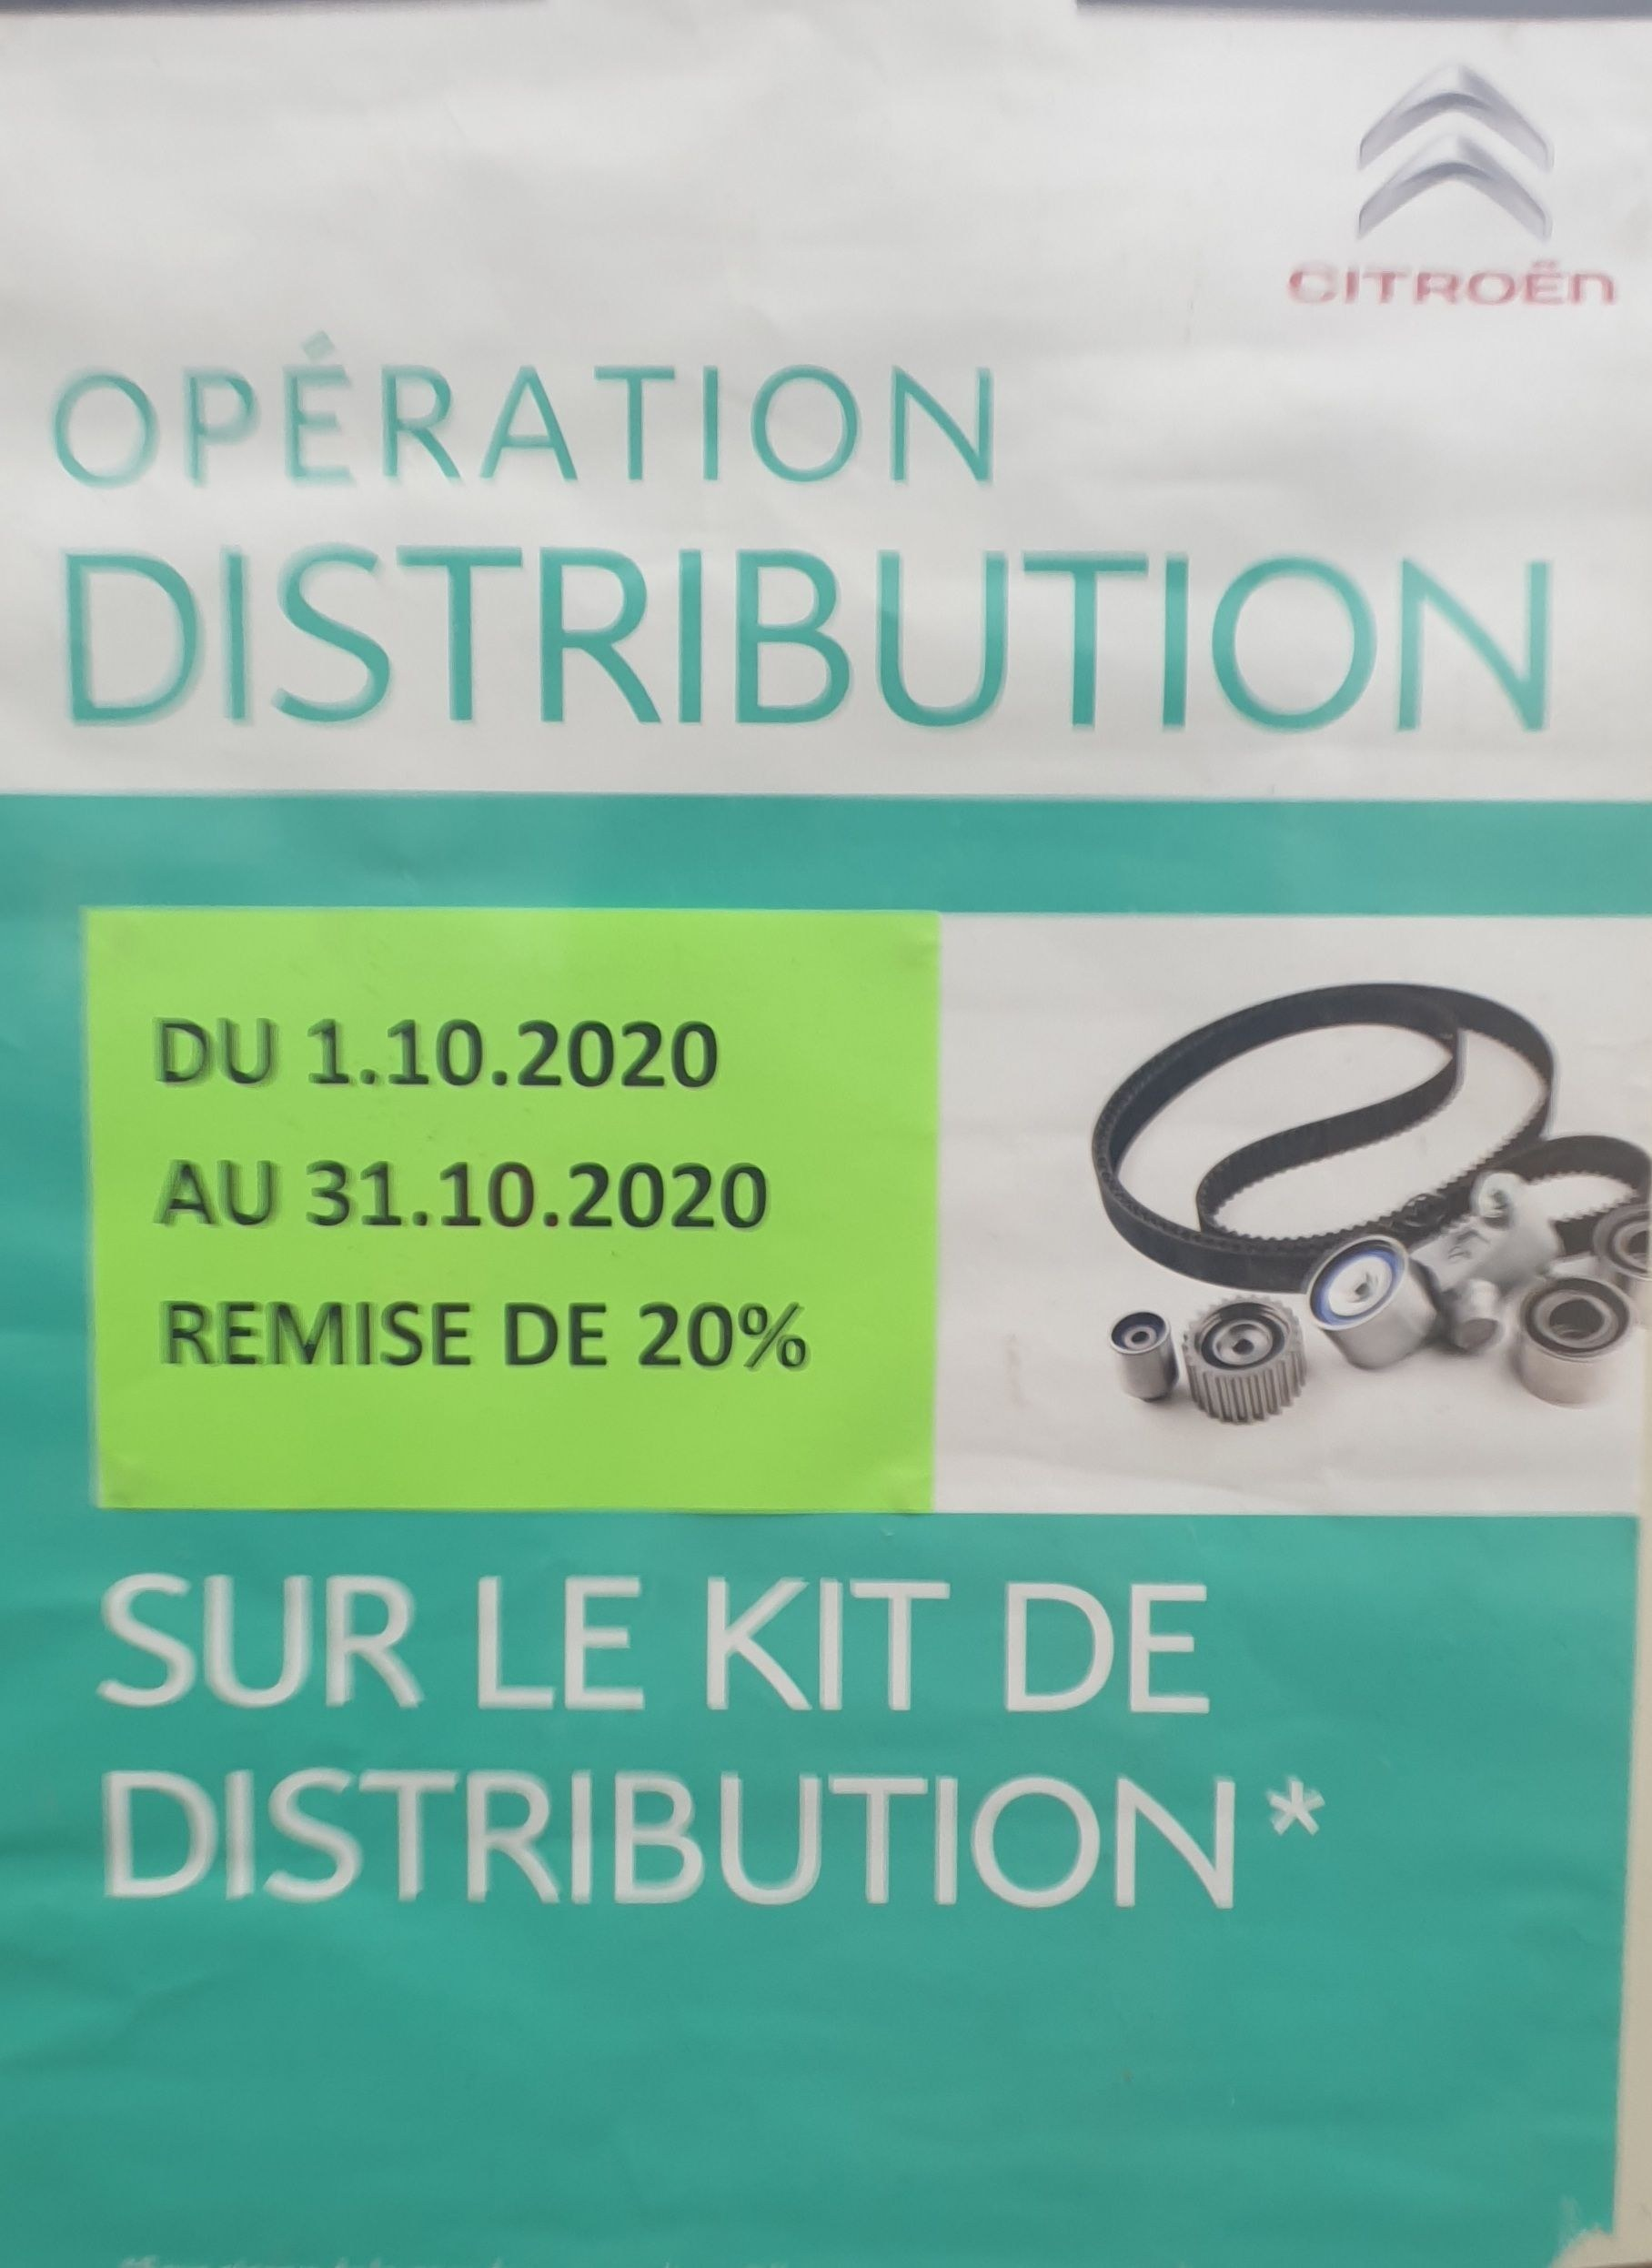 OPERATION DISTRIBUTION